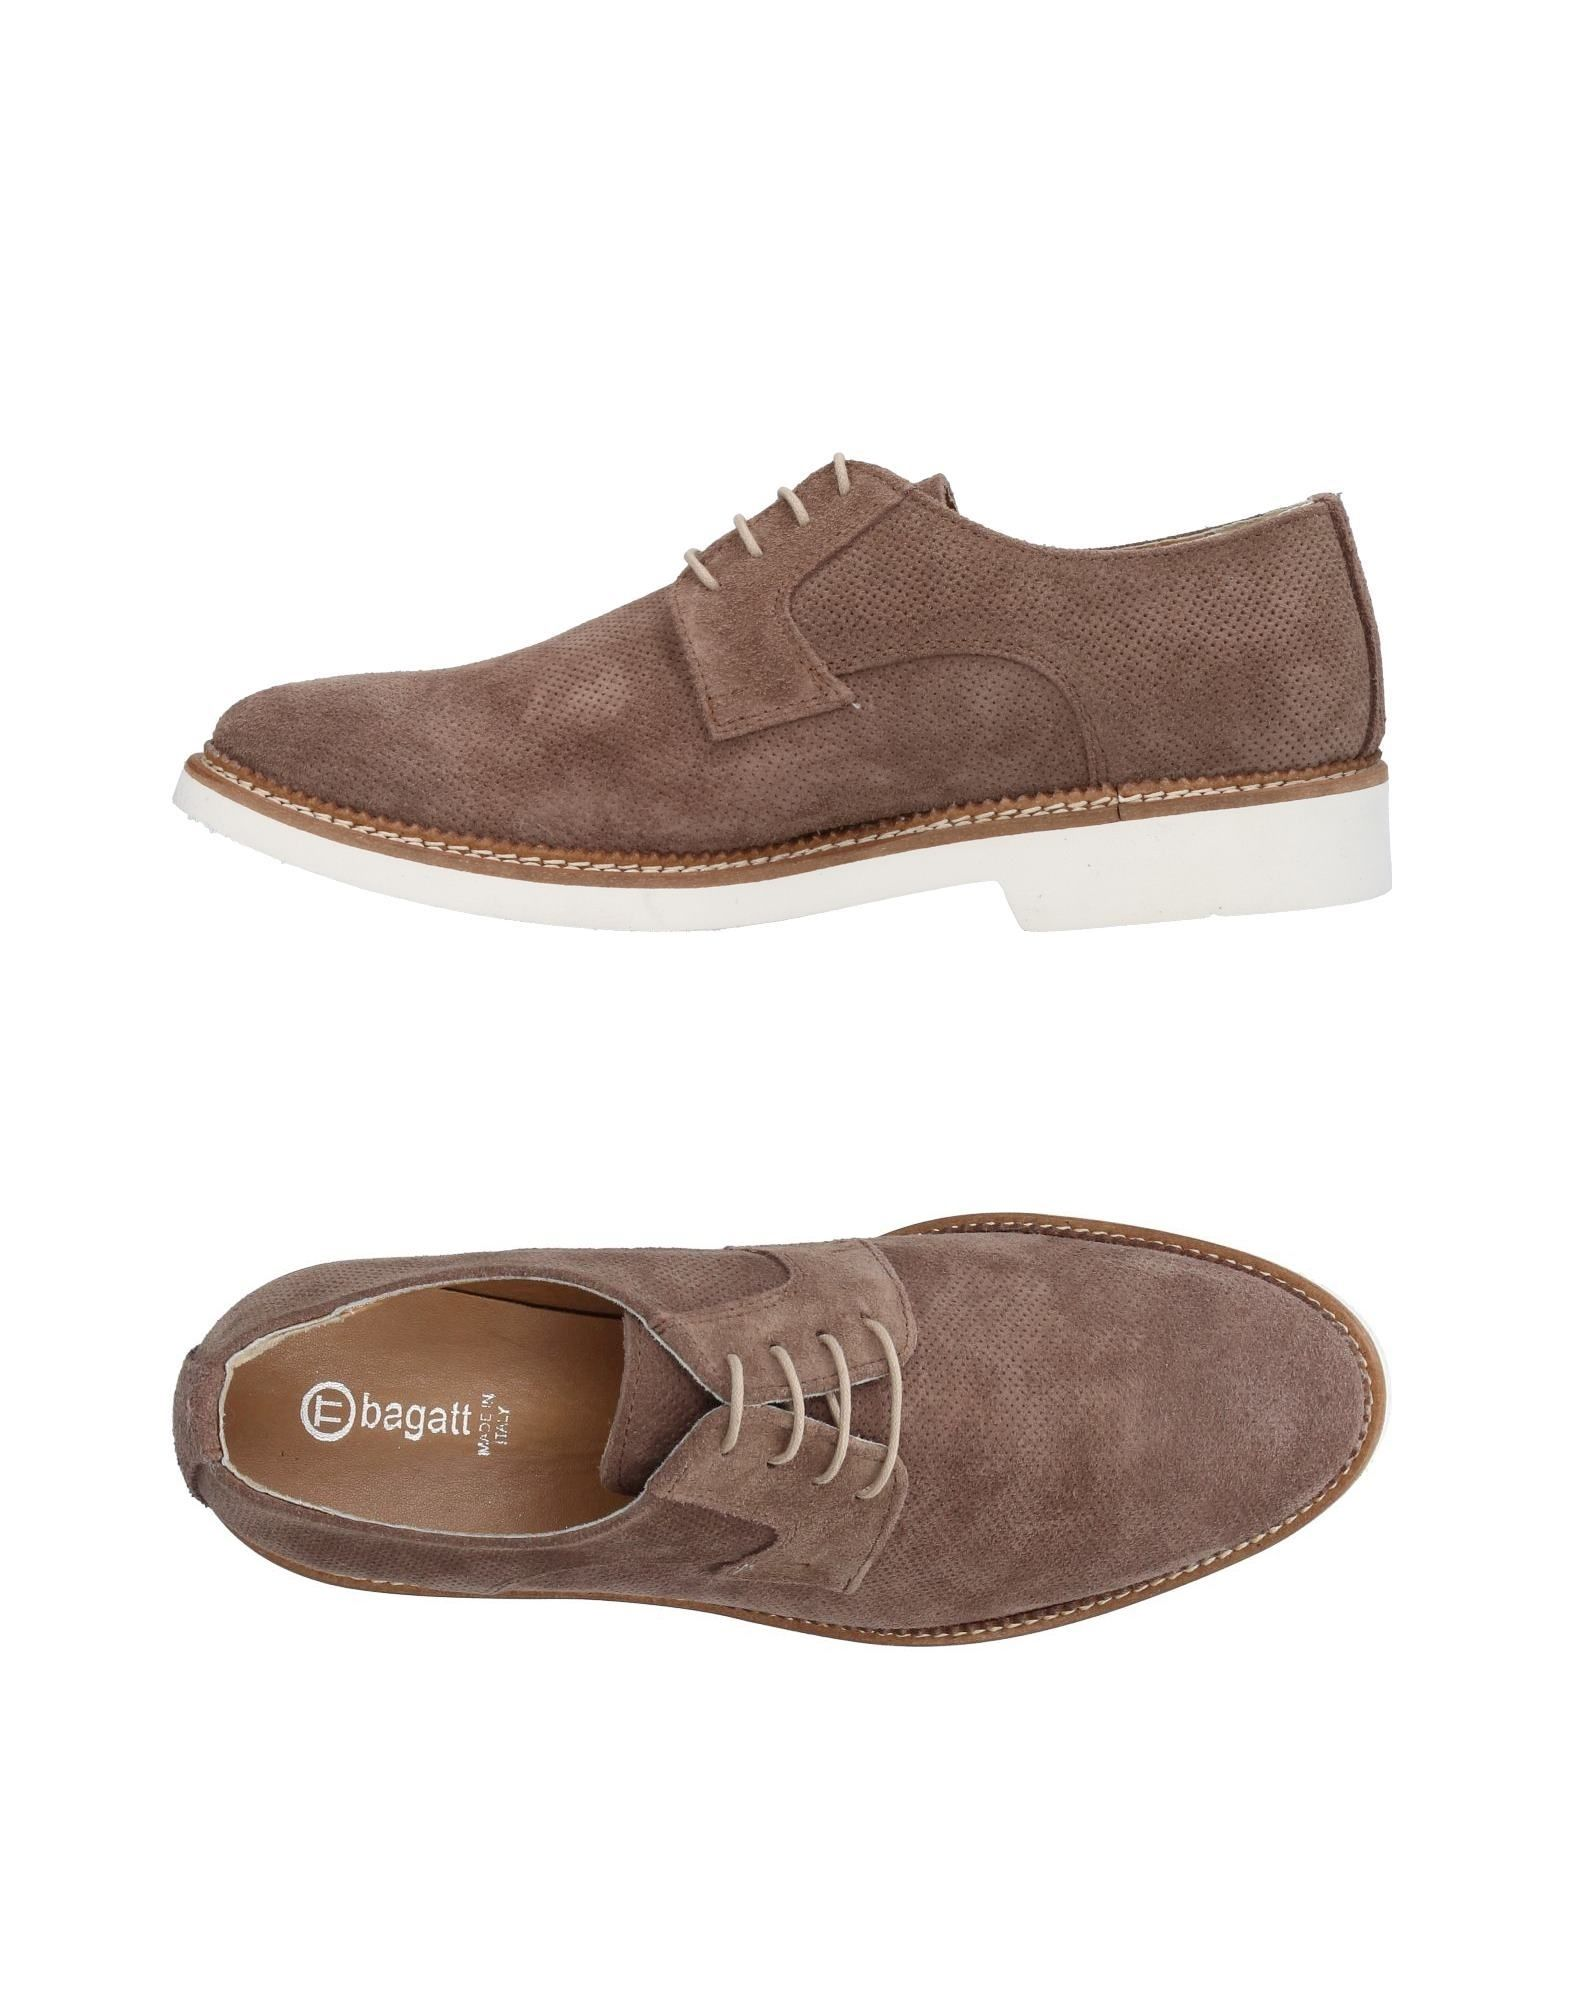 CHAUSSURES - Chaussures à lacetsBagatt V8uTJeD